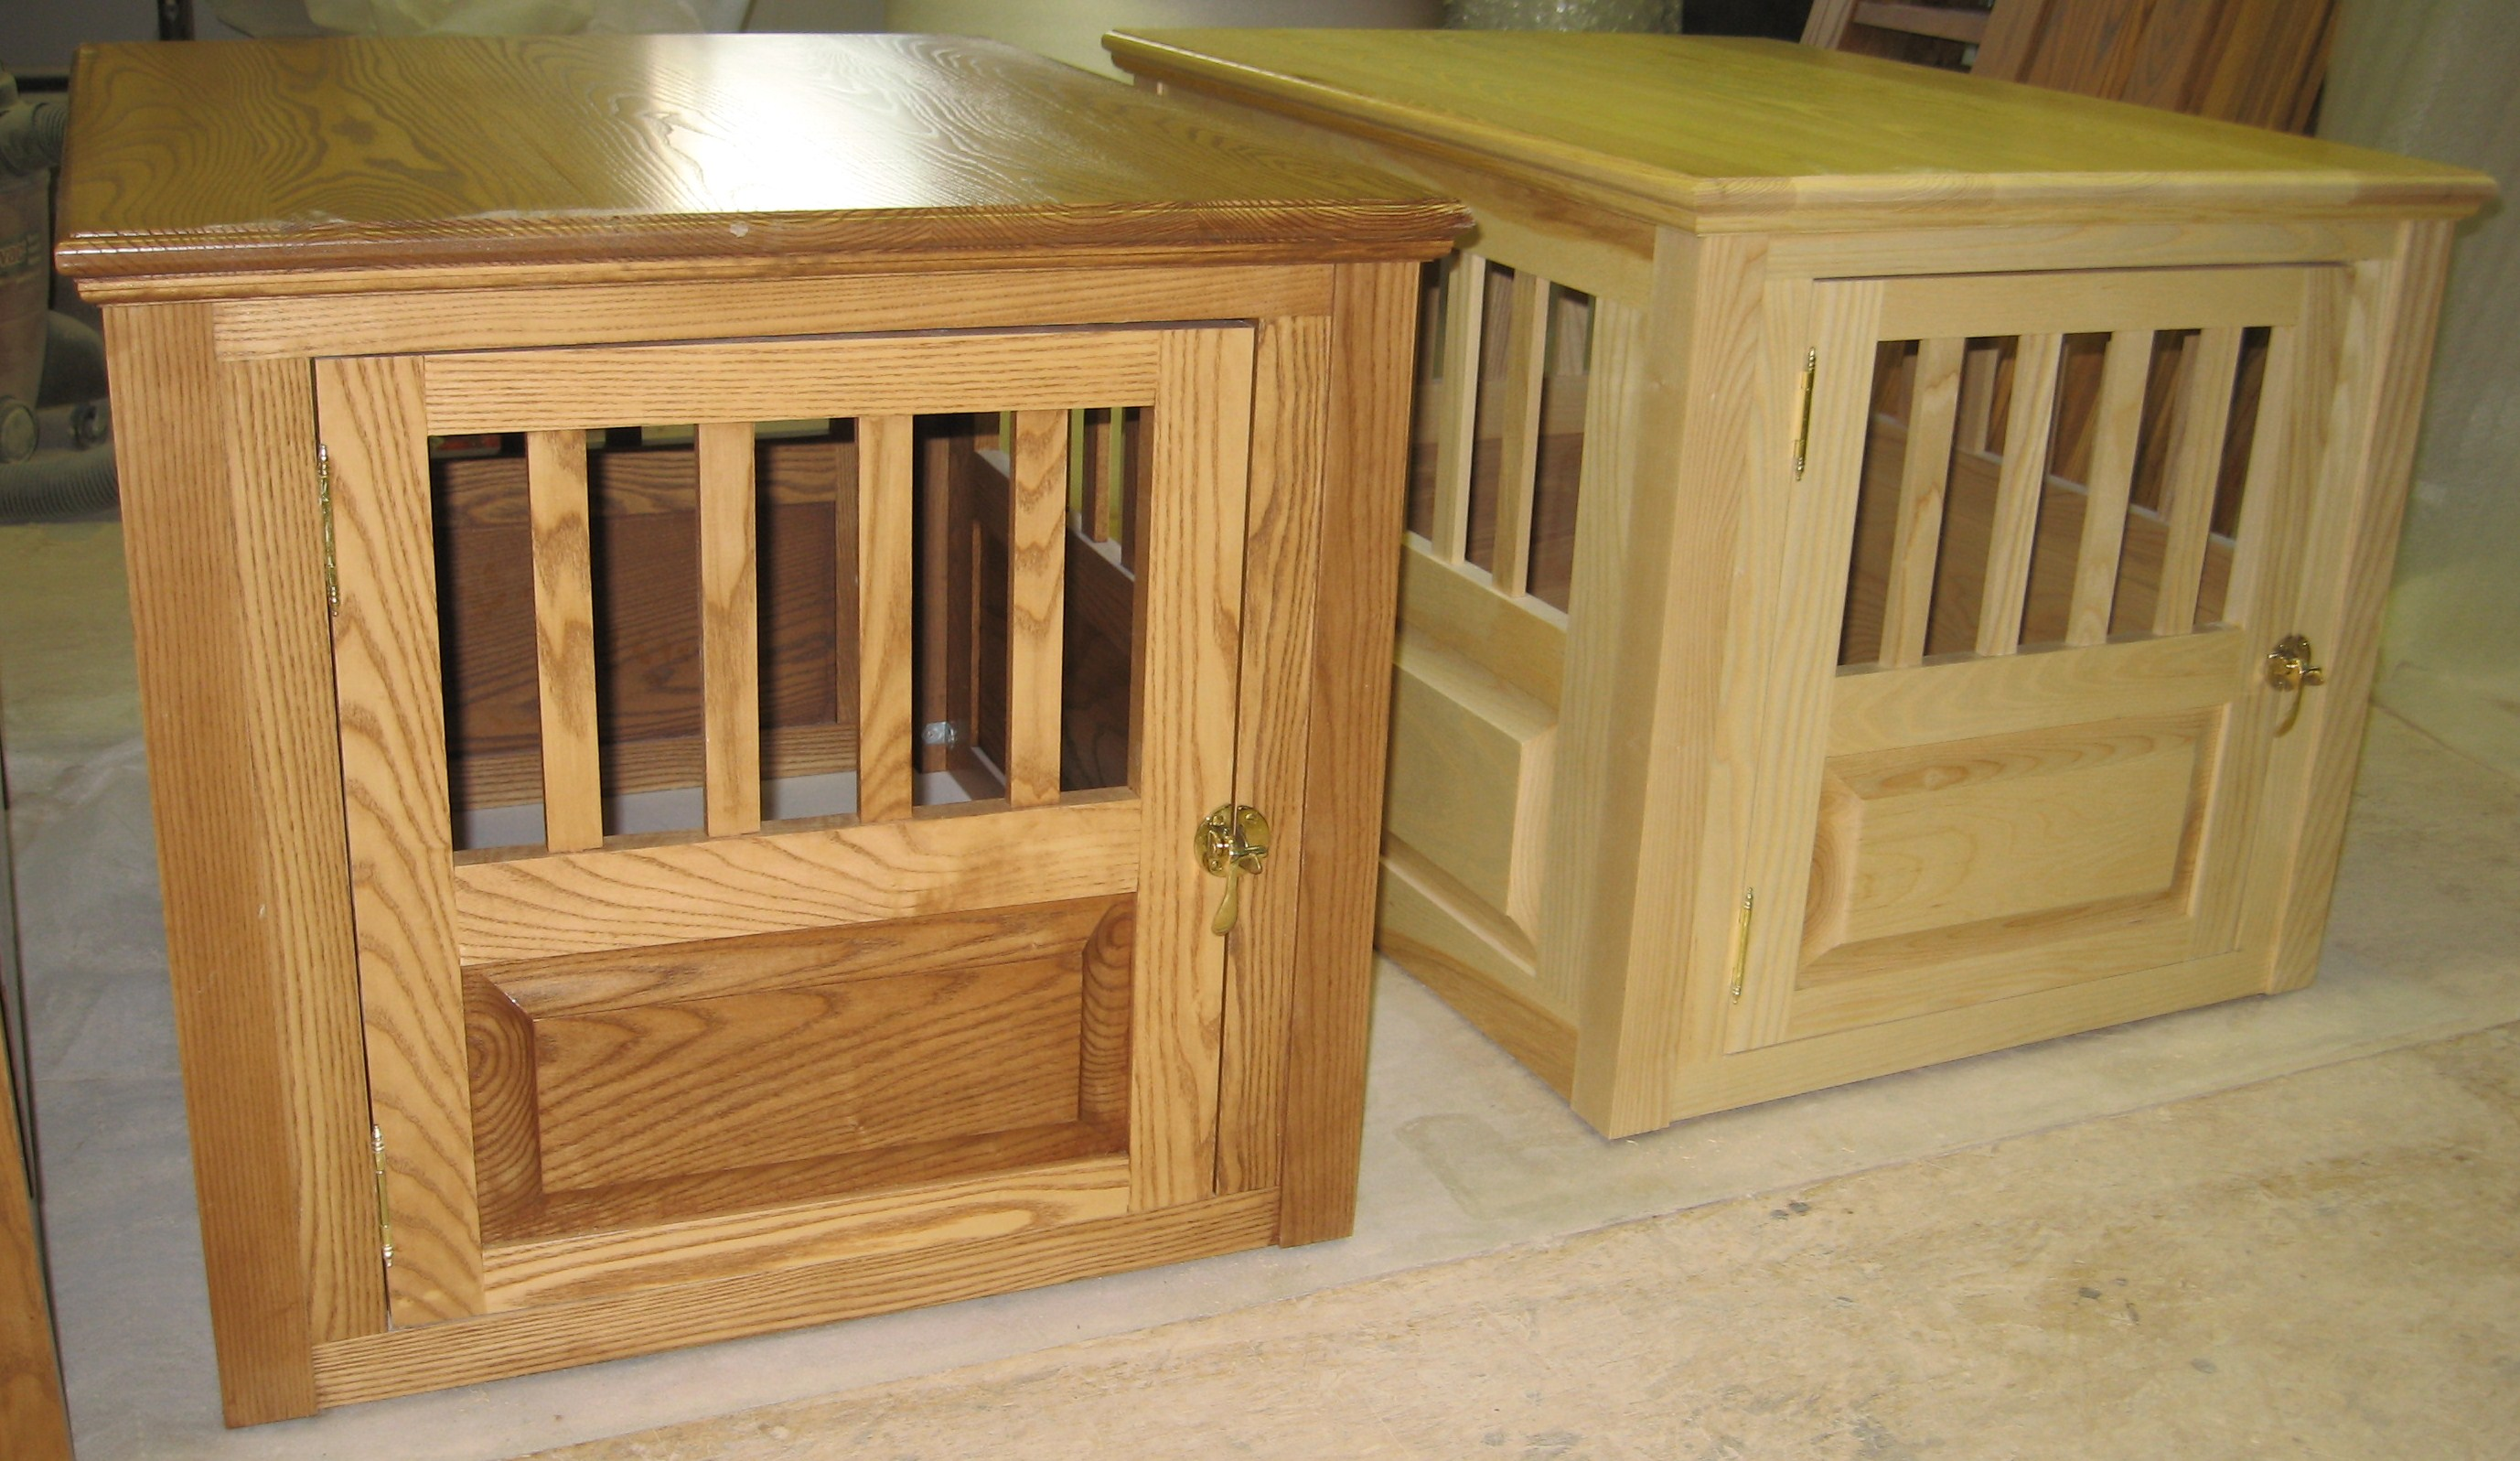 Wooden Crates Furniture Crowdbuild For